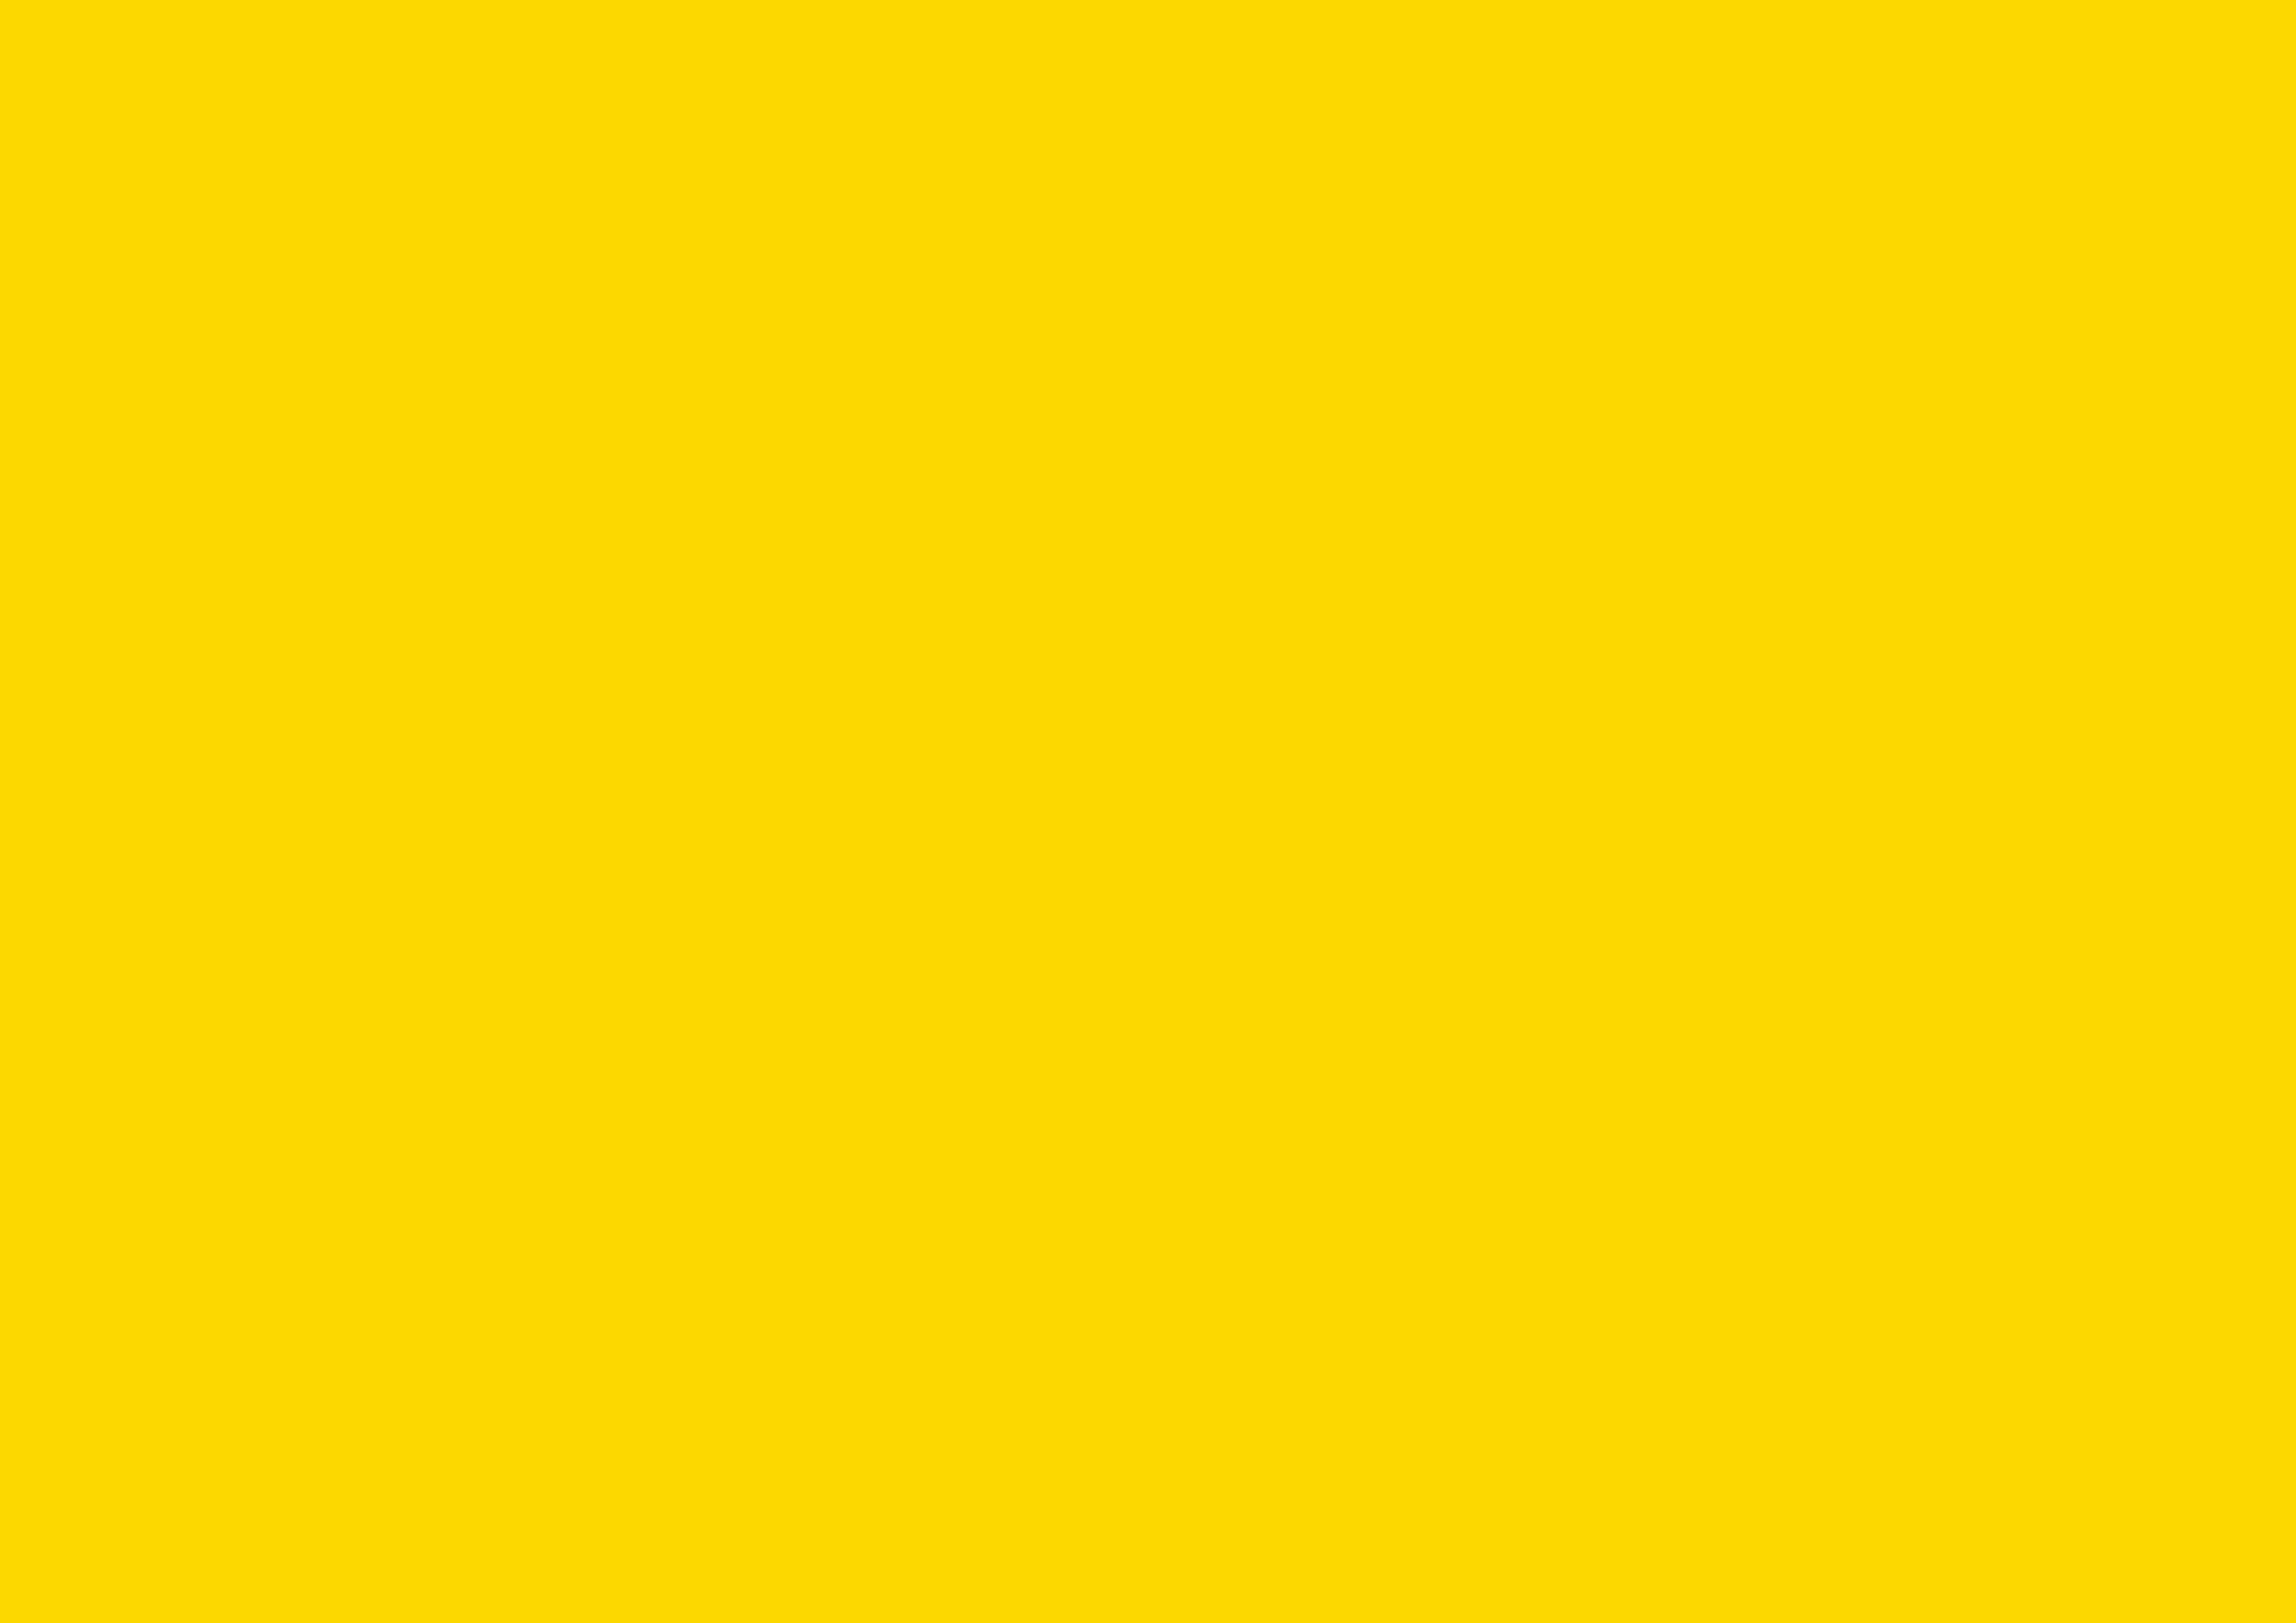 3508x2480 School Bus Yellow Solid Color Background